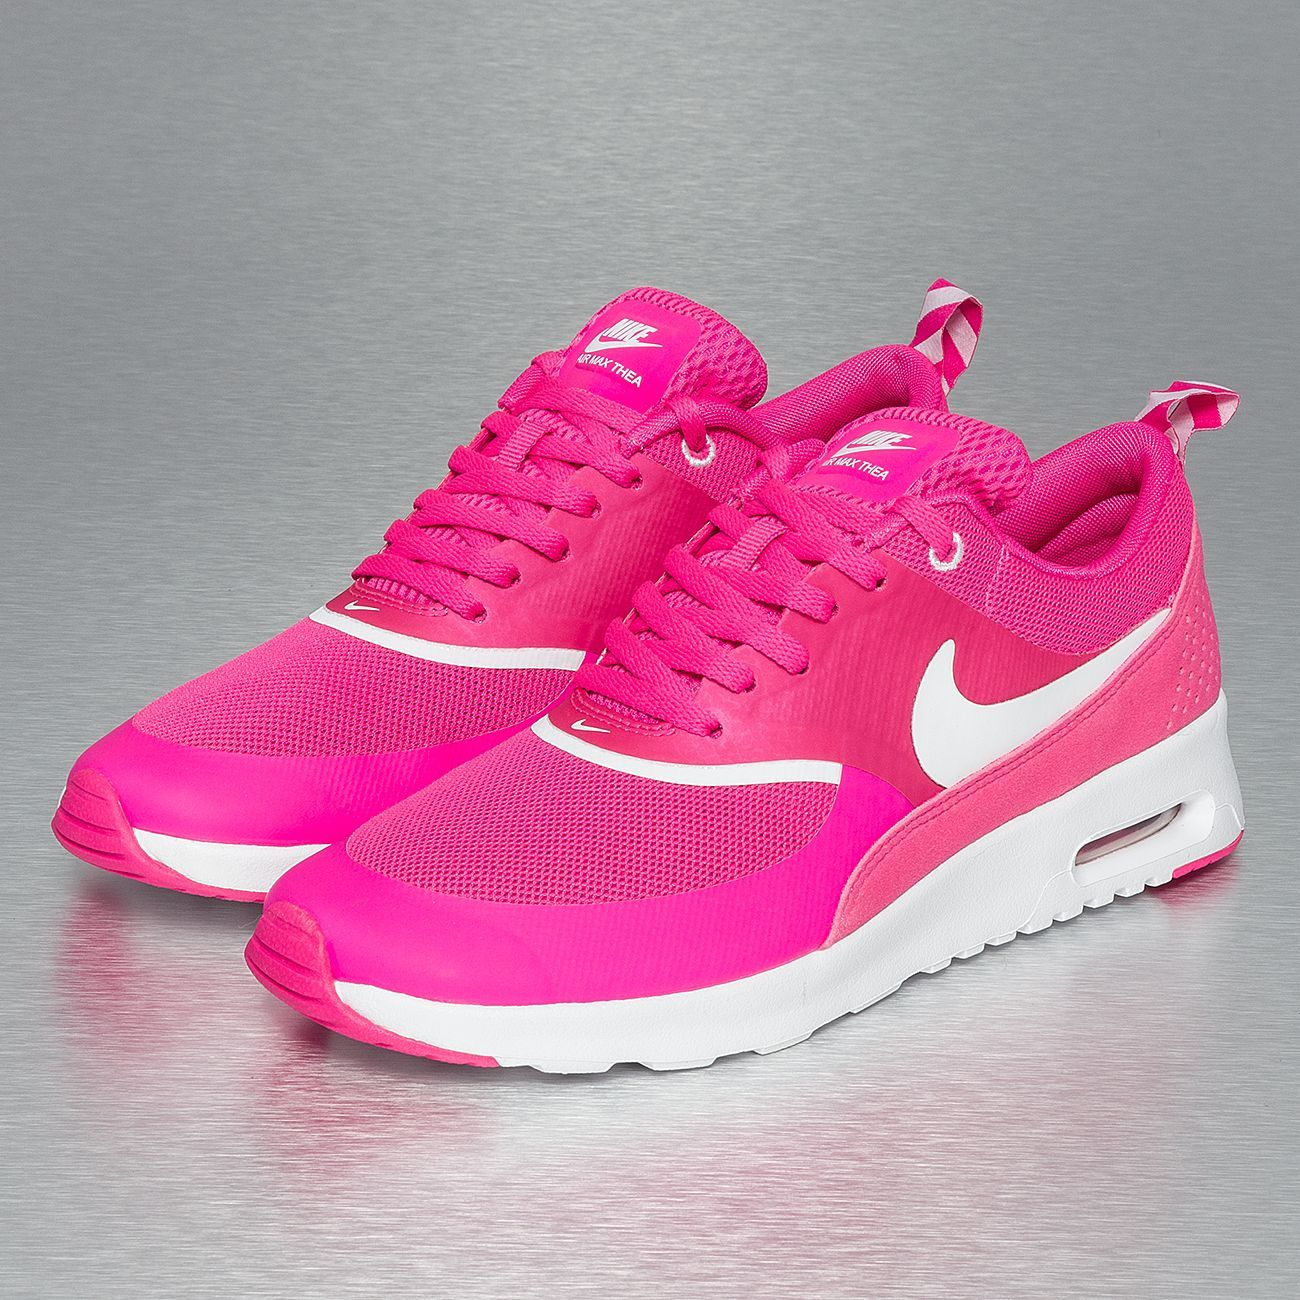 nike air max thea pink power